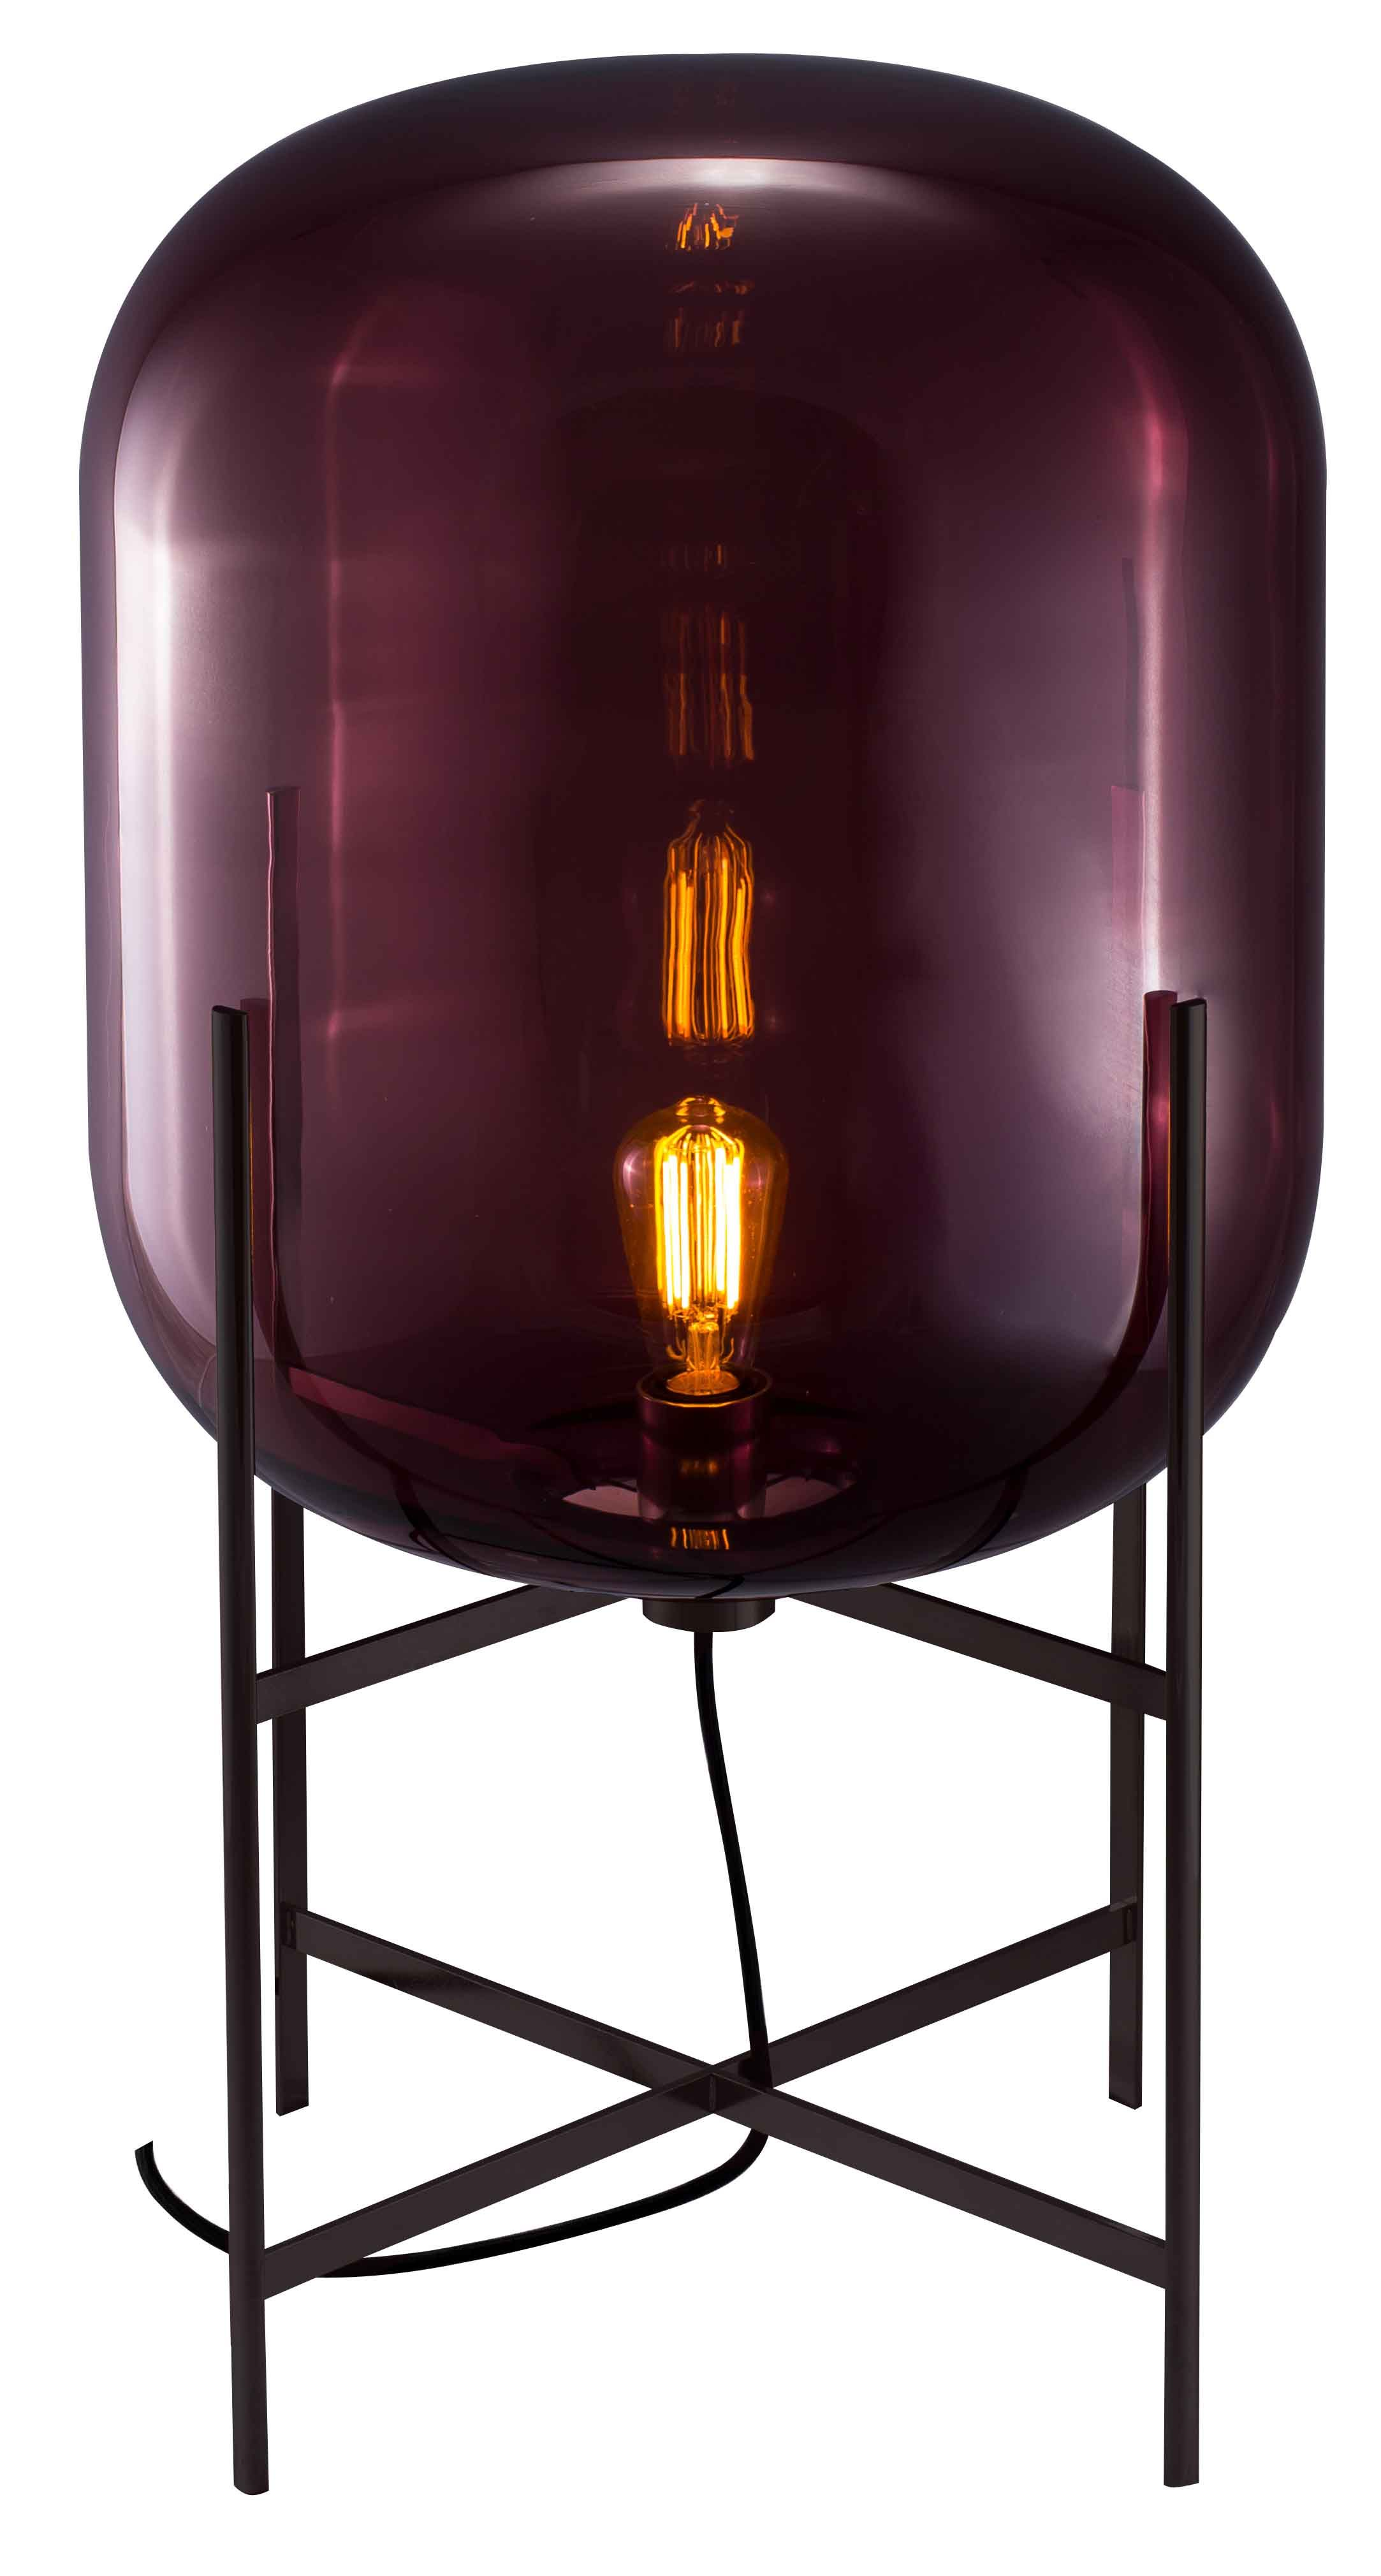 Oda table light in aubergine shade with chrome base furniture oda table light in aubergine shade with chrome base geotapseo Choice Image